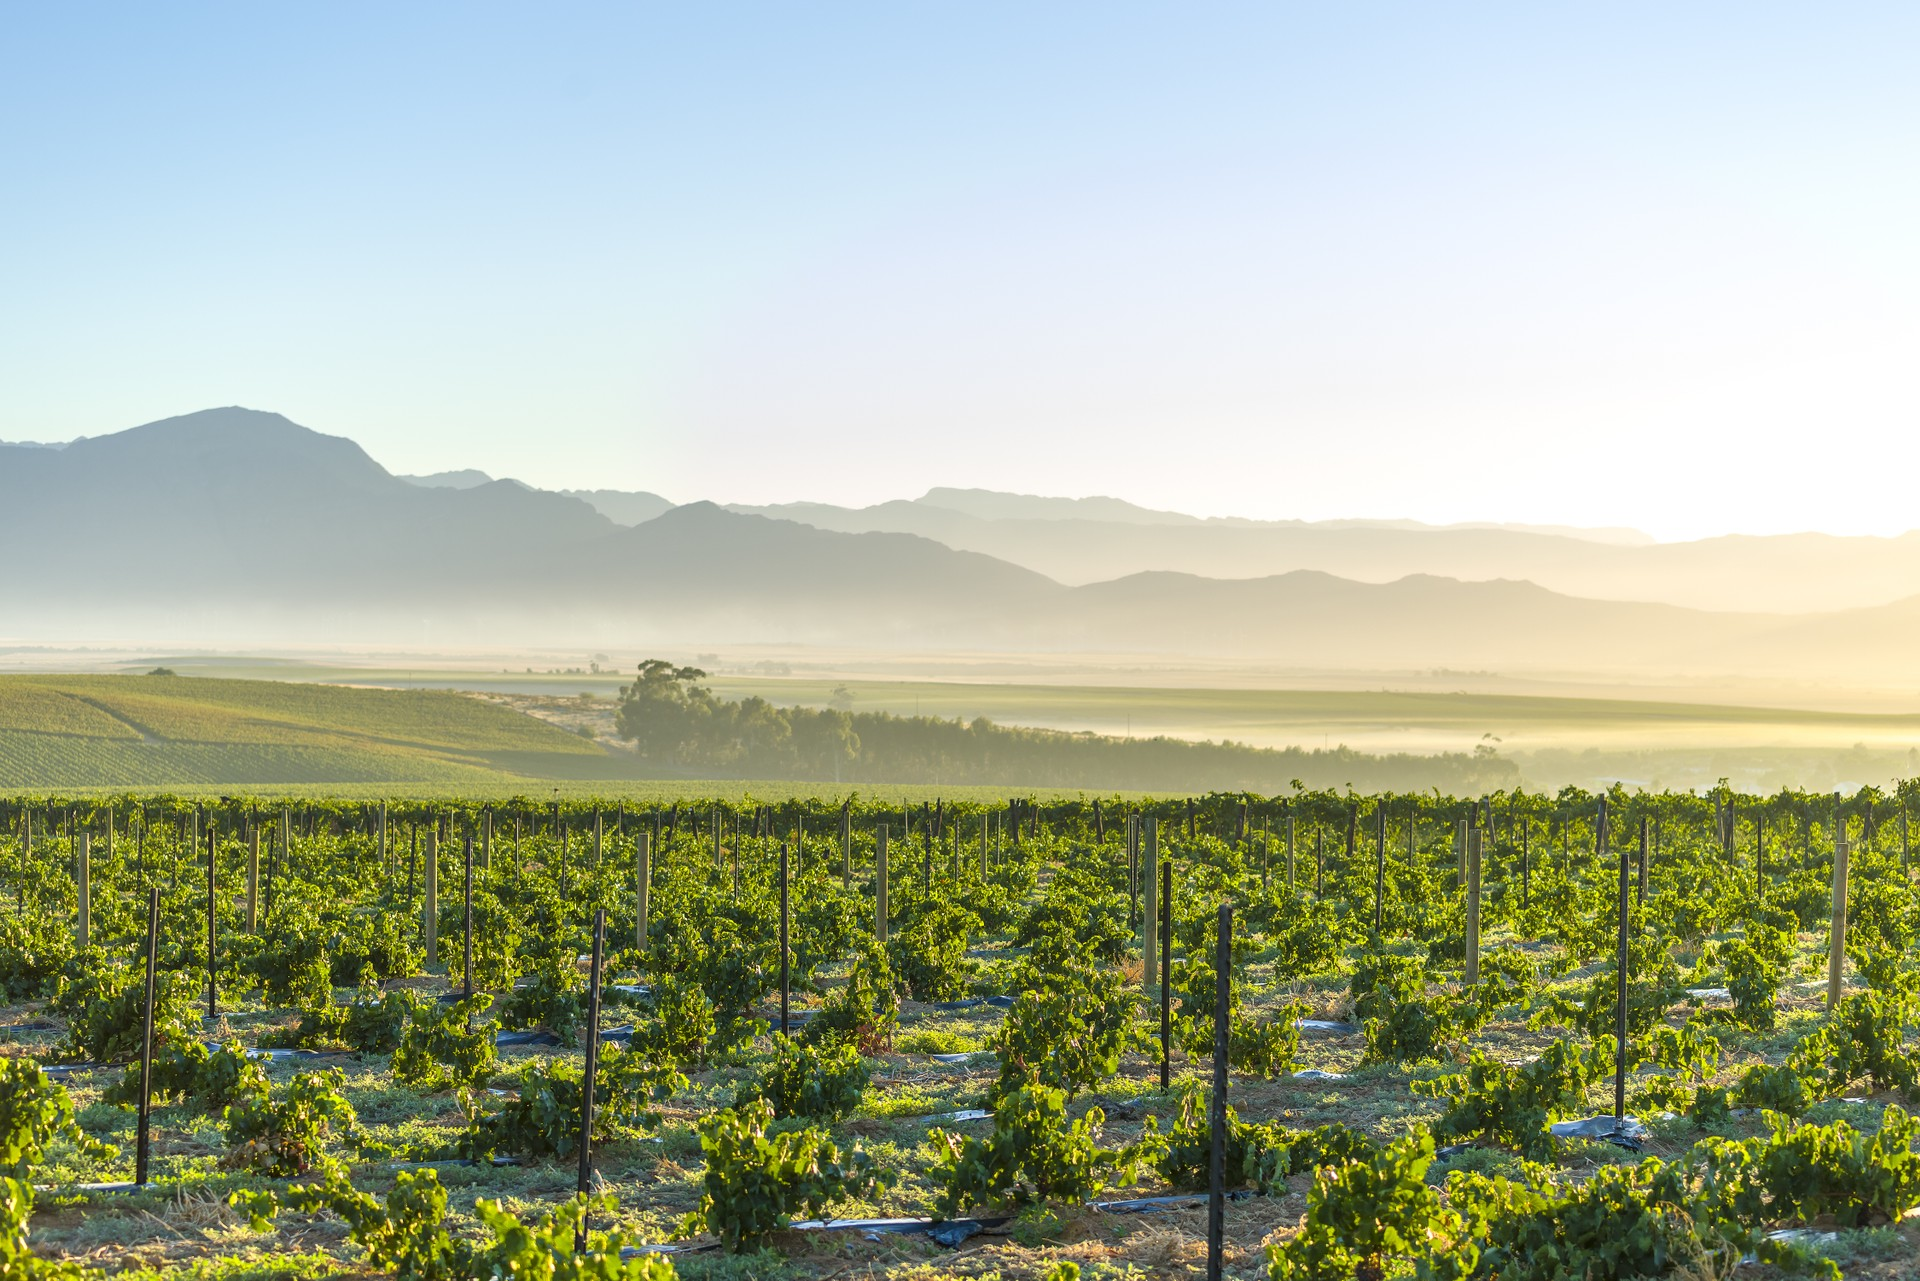 Sunrise over the vineyards of Stellenbosch